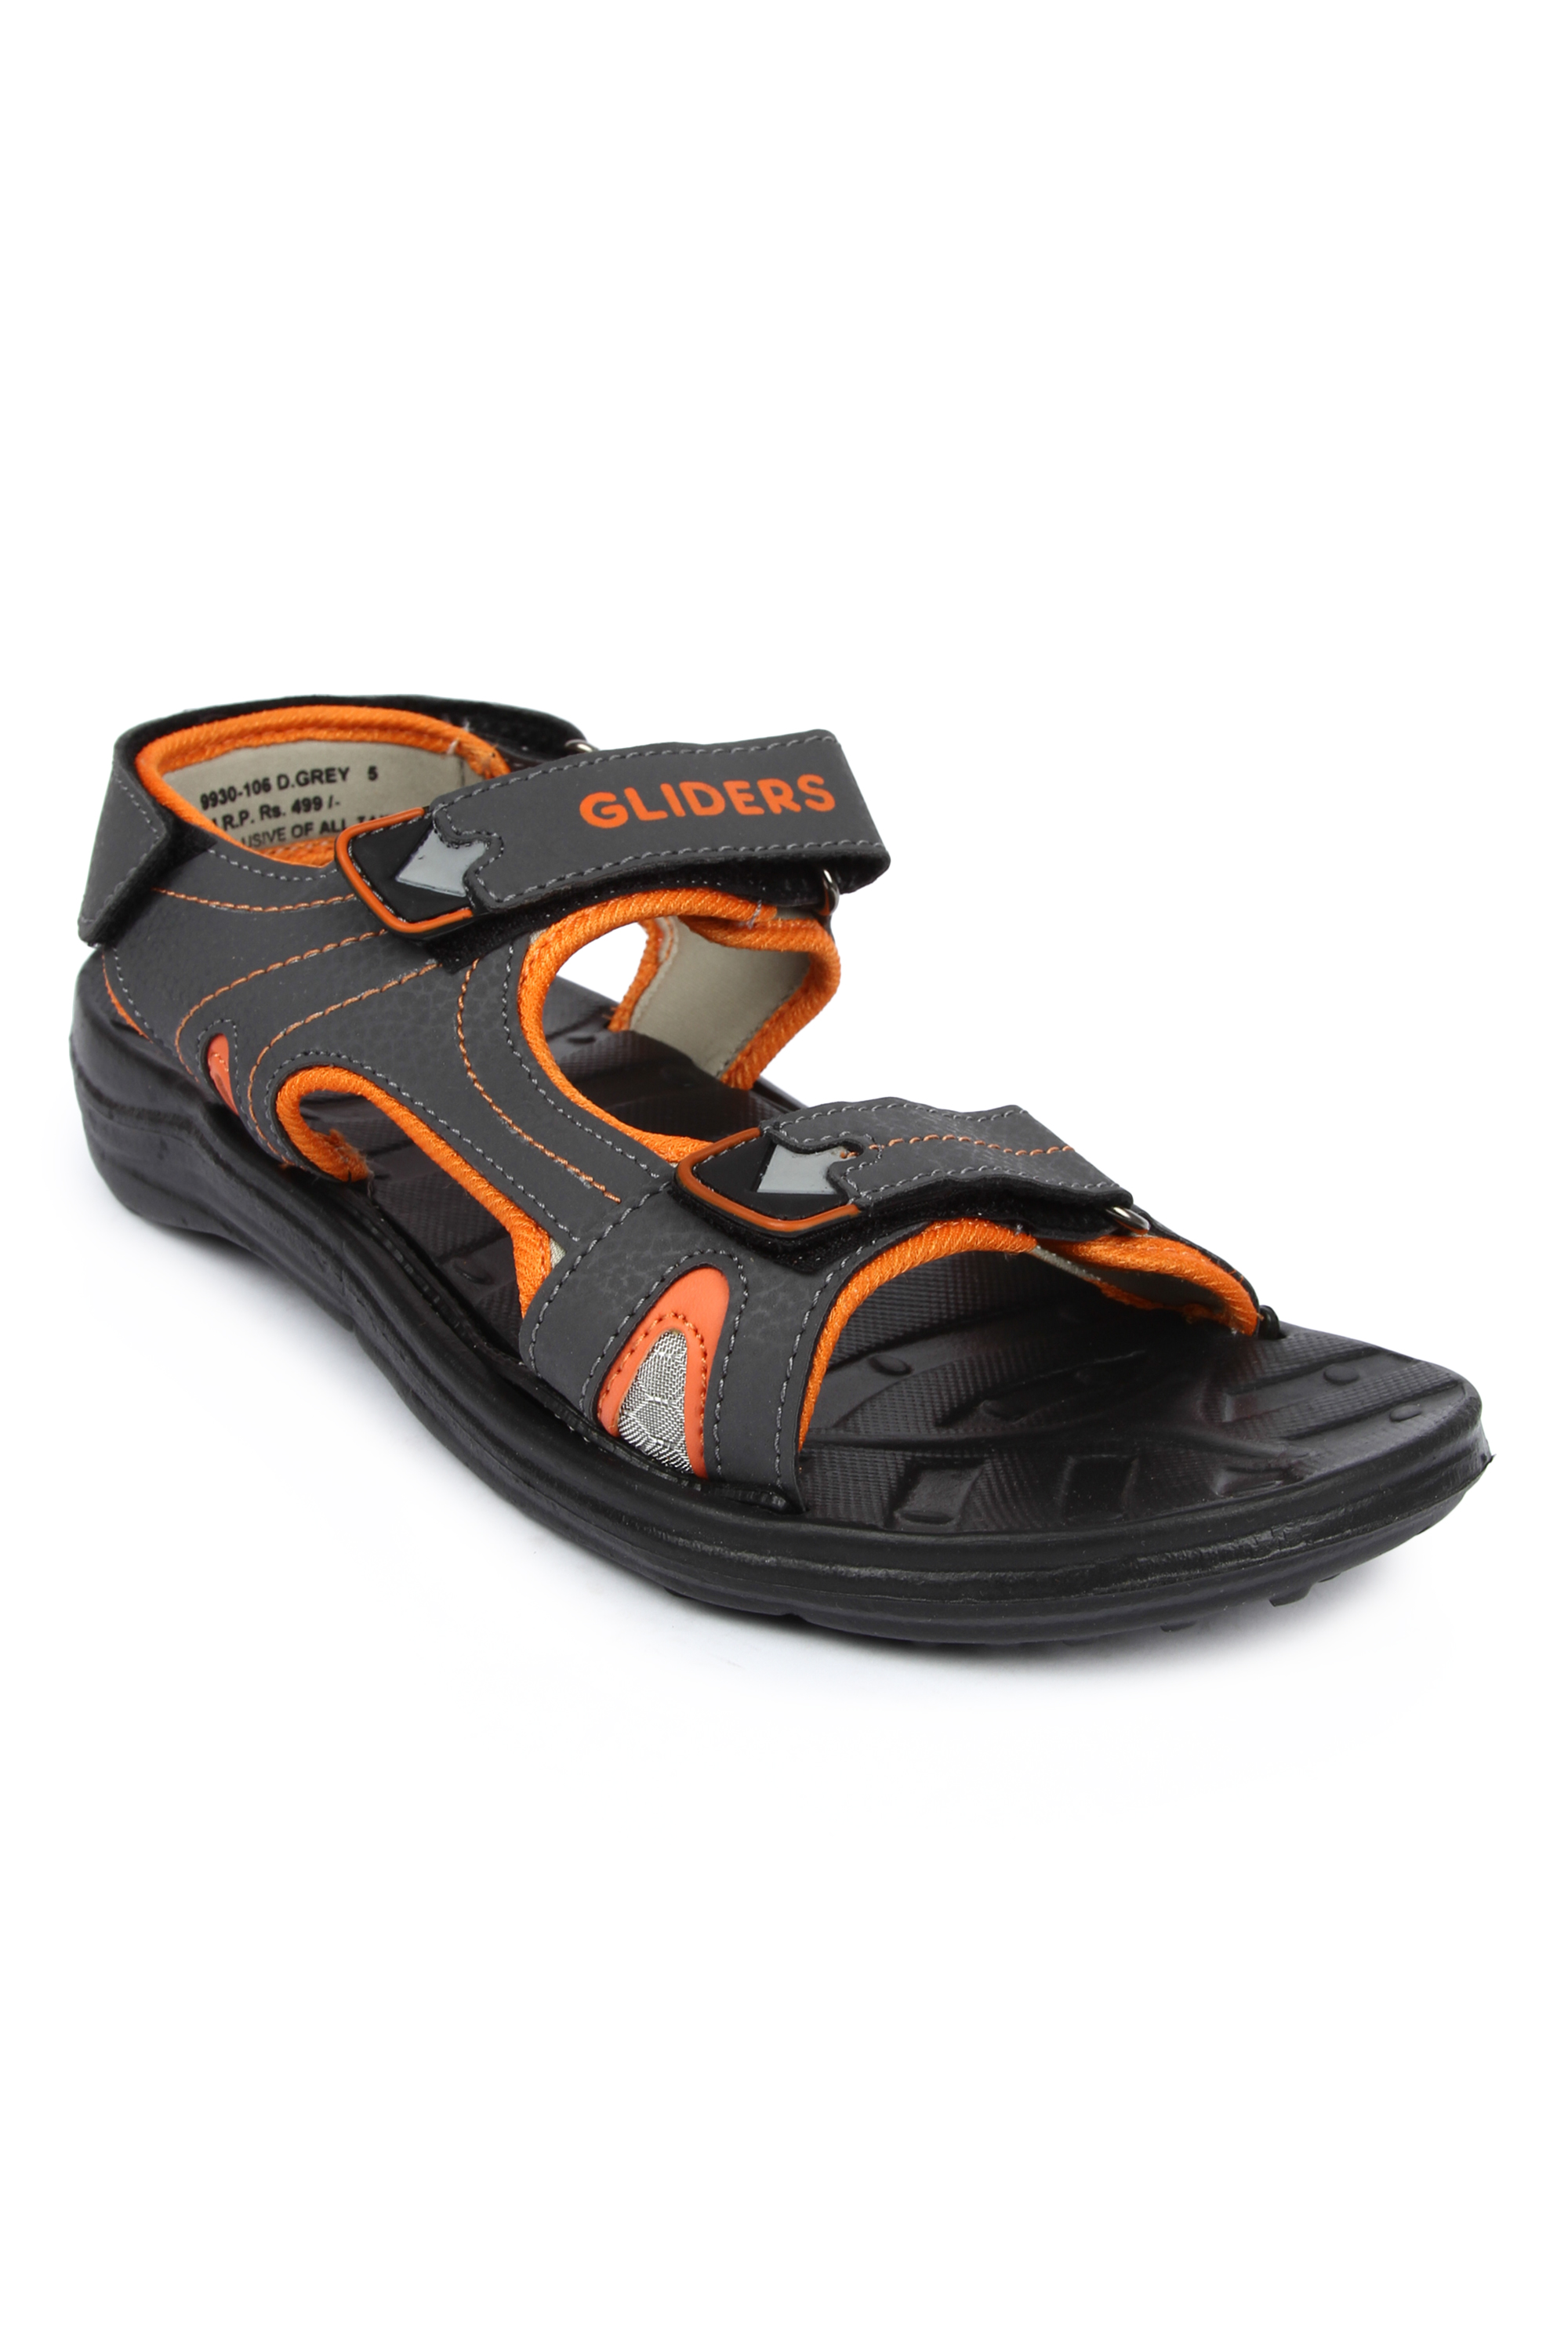 Liberty | Liberty Gliders Grey Sandals 9930-106 For - Ladies